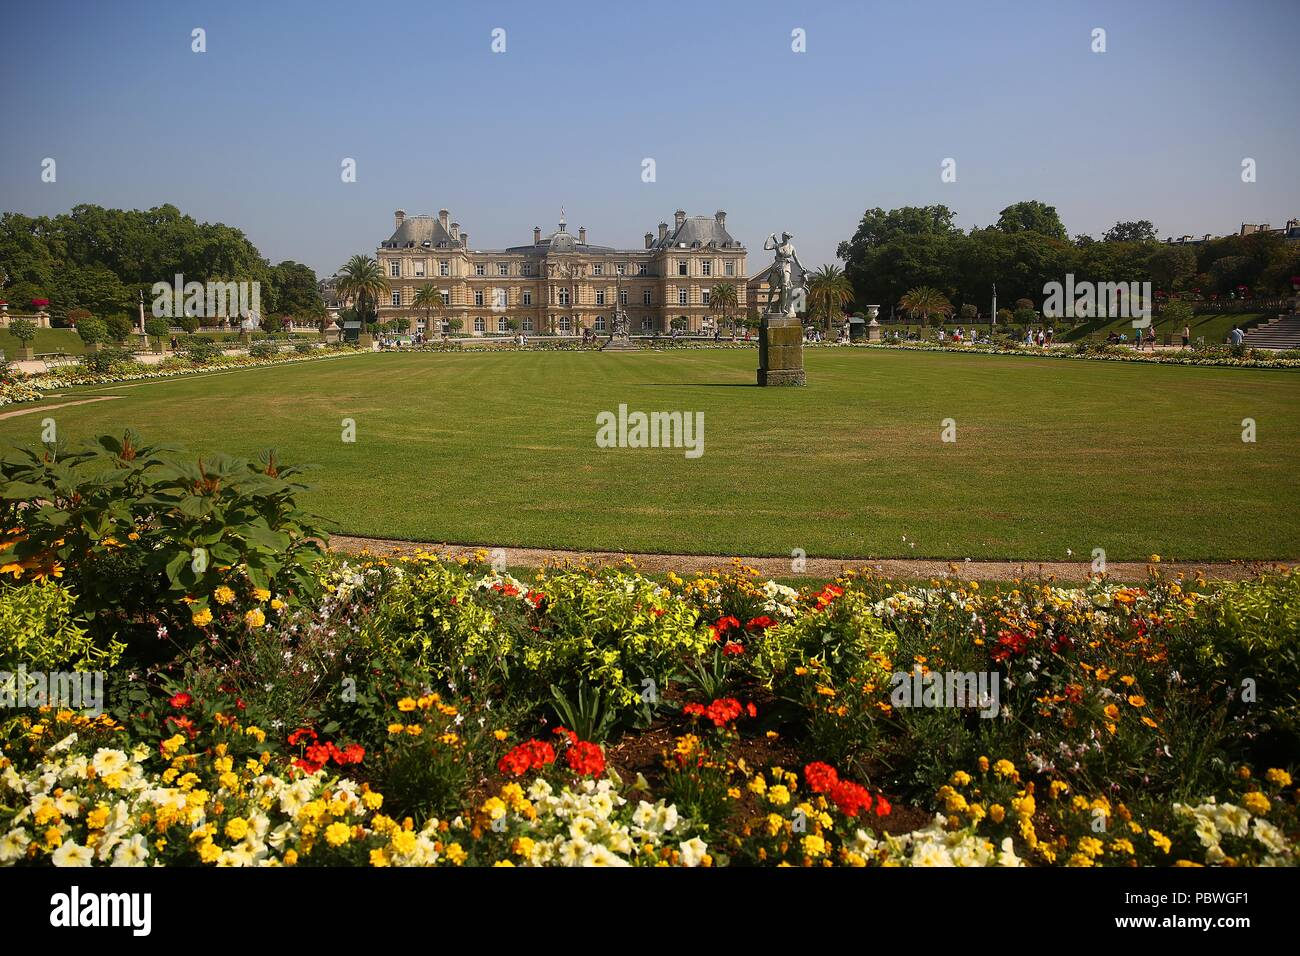 July 23, 2018 - Paris, France - The Luxembourg Gardens in Paris, France.  The Gardens were created beginning in 1612 by Marie de' Medici, the widow of King Henry IV of France, for a new residence she constructed, the Luxembourg Palace.  It covers 23 hectares and is known for its lawns, tree-lined promenades, flowerbeds, model sailboats on its circular basin, and picturesque Medici Fountain, built in 1620. (Credit Image: © Leigh Taylor via ZUMA Wire) - Stock Image